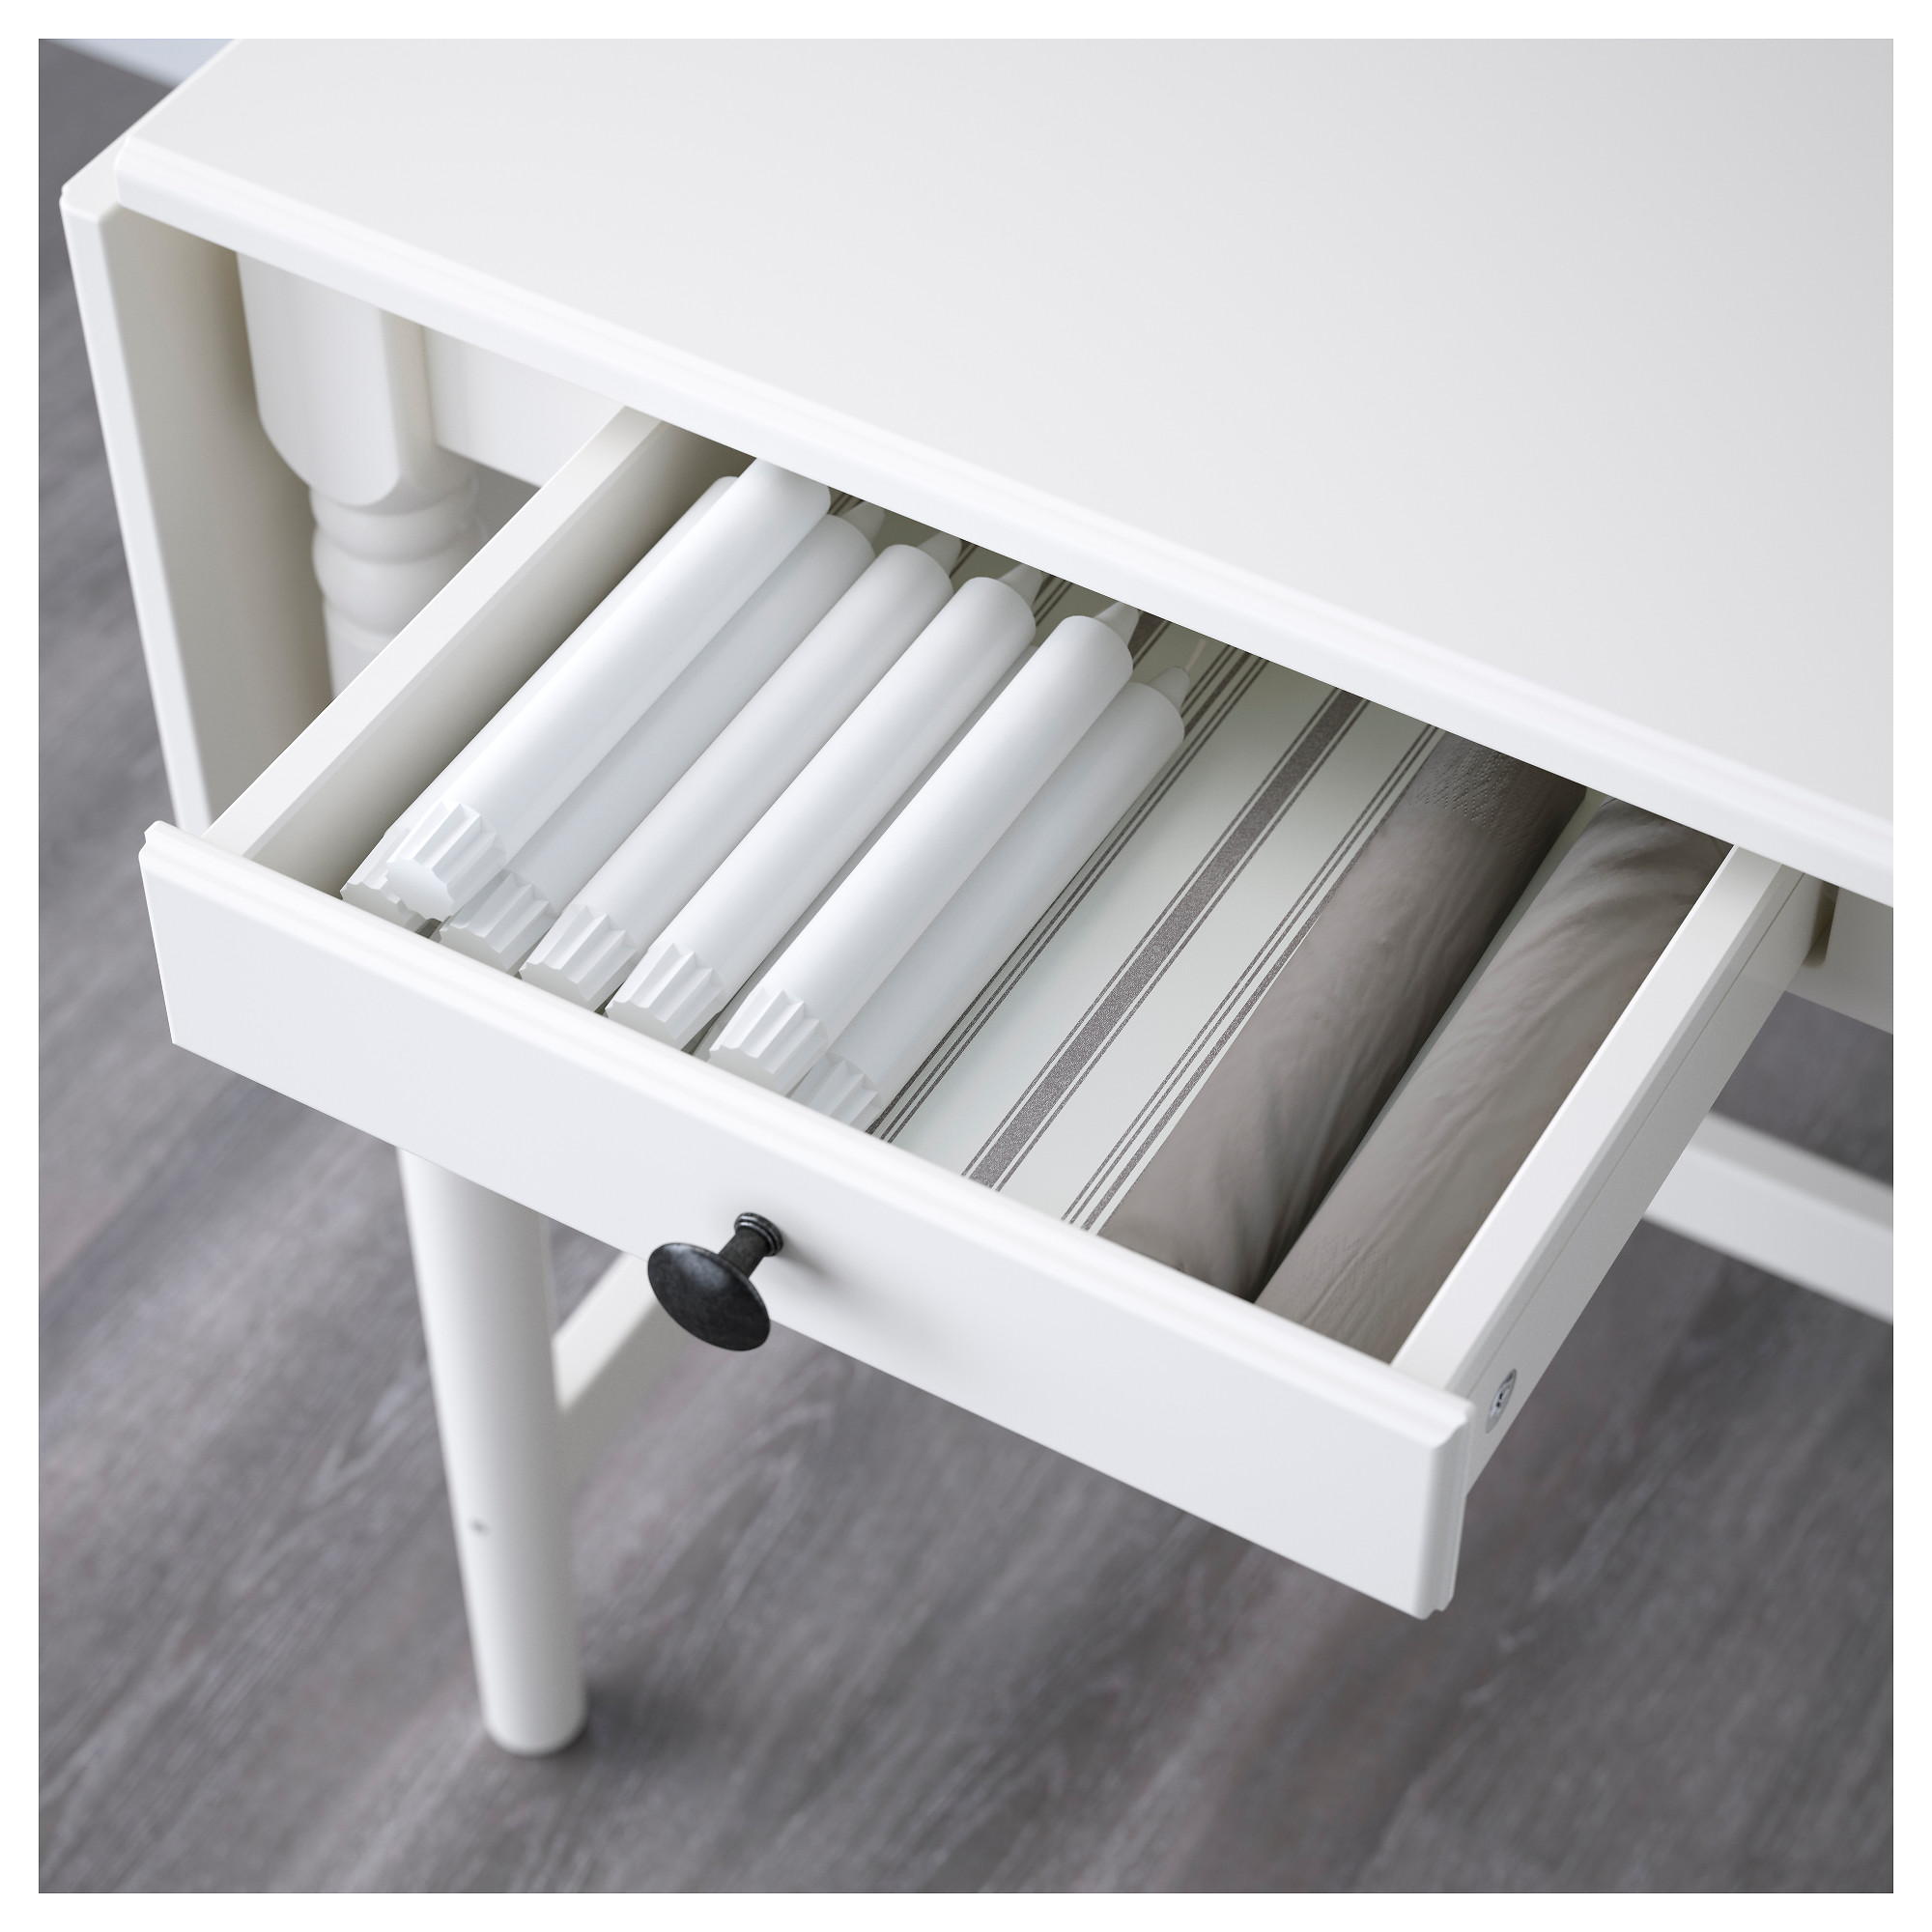 Ikea Kitchen Bench Uk: IKEA INGATORP Dinning Table, Drop-leaf Table In 3 Colors